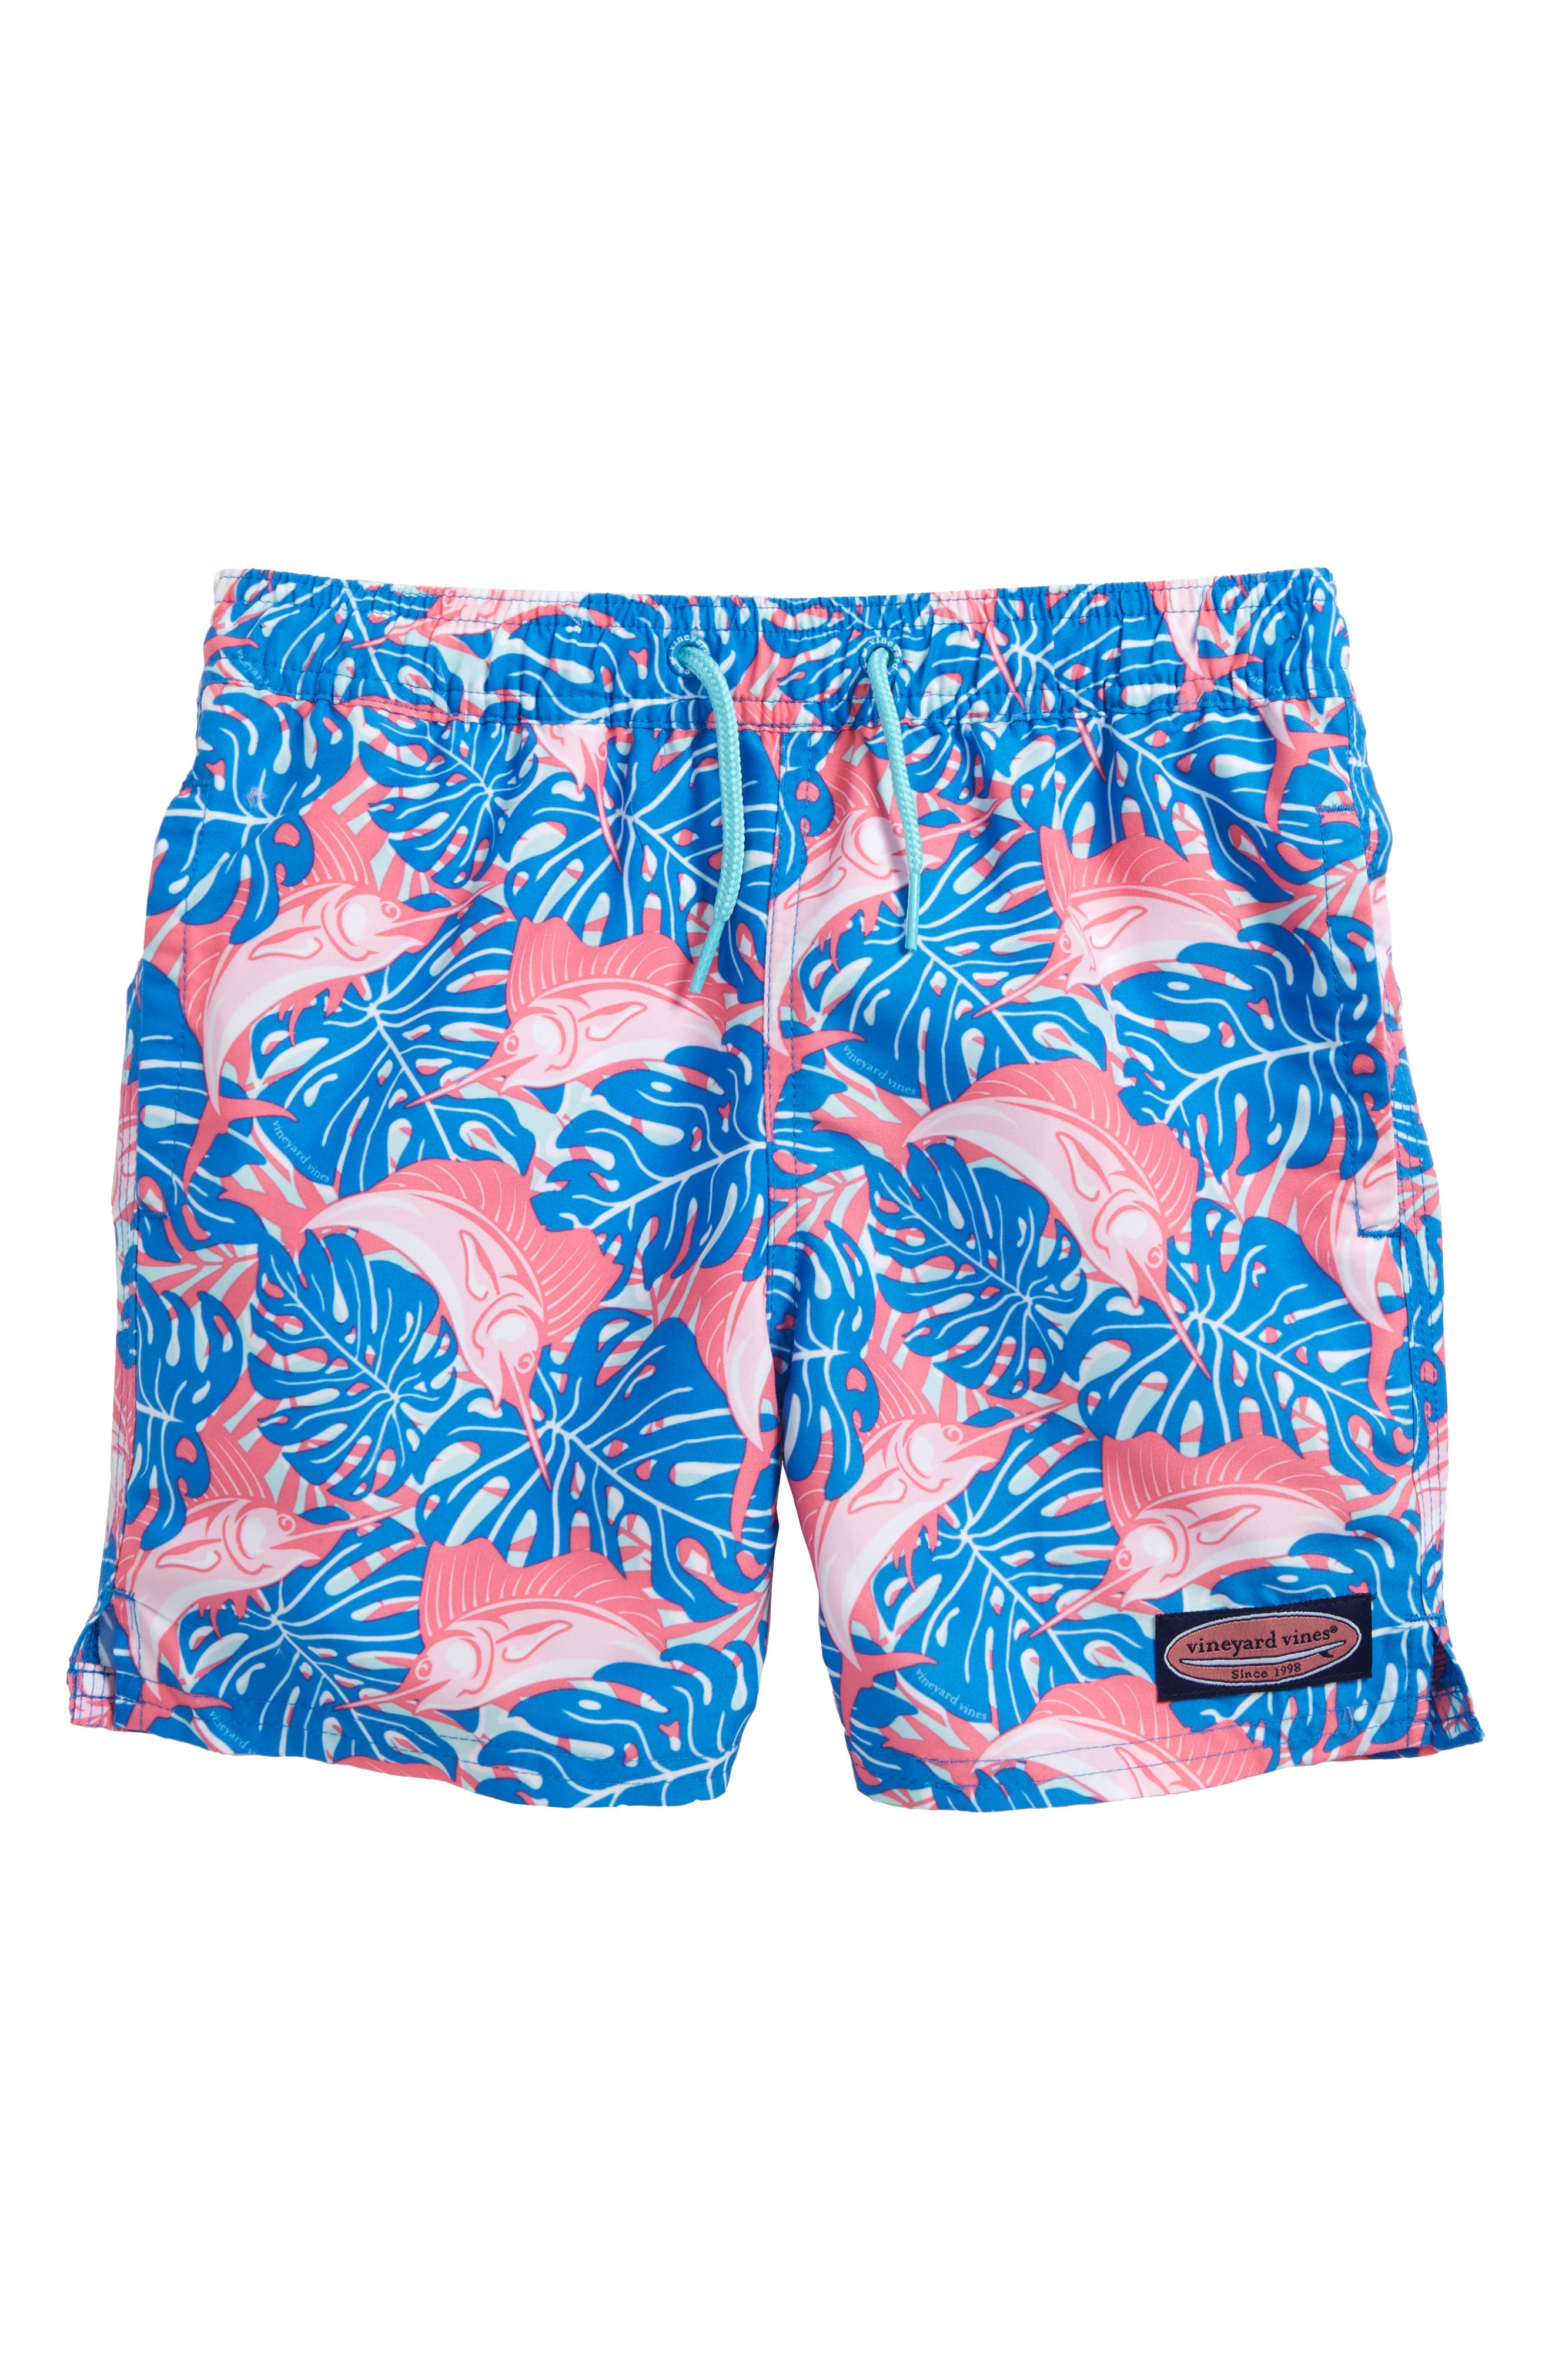 Chappy Sailfish & Leaves Swim Trunks,                             Main thumbnail 1, color,                             474